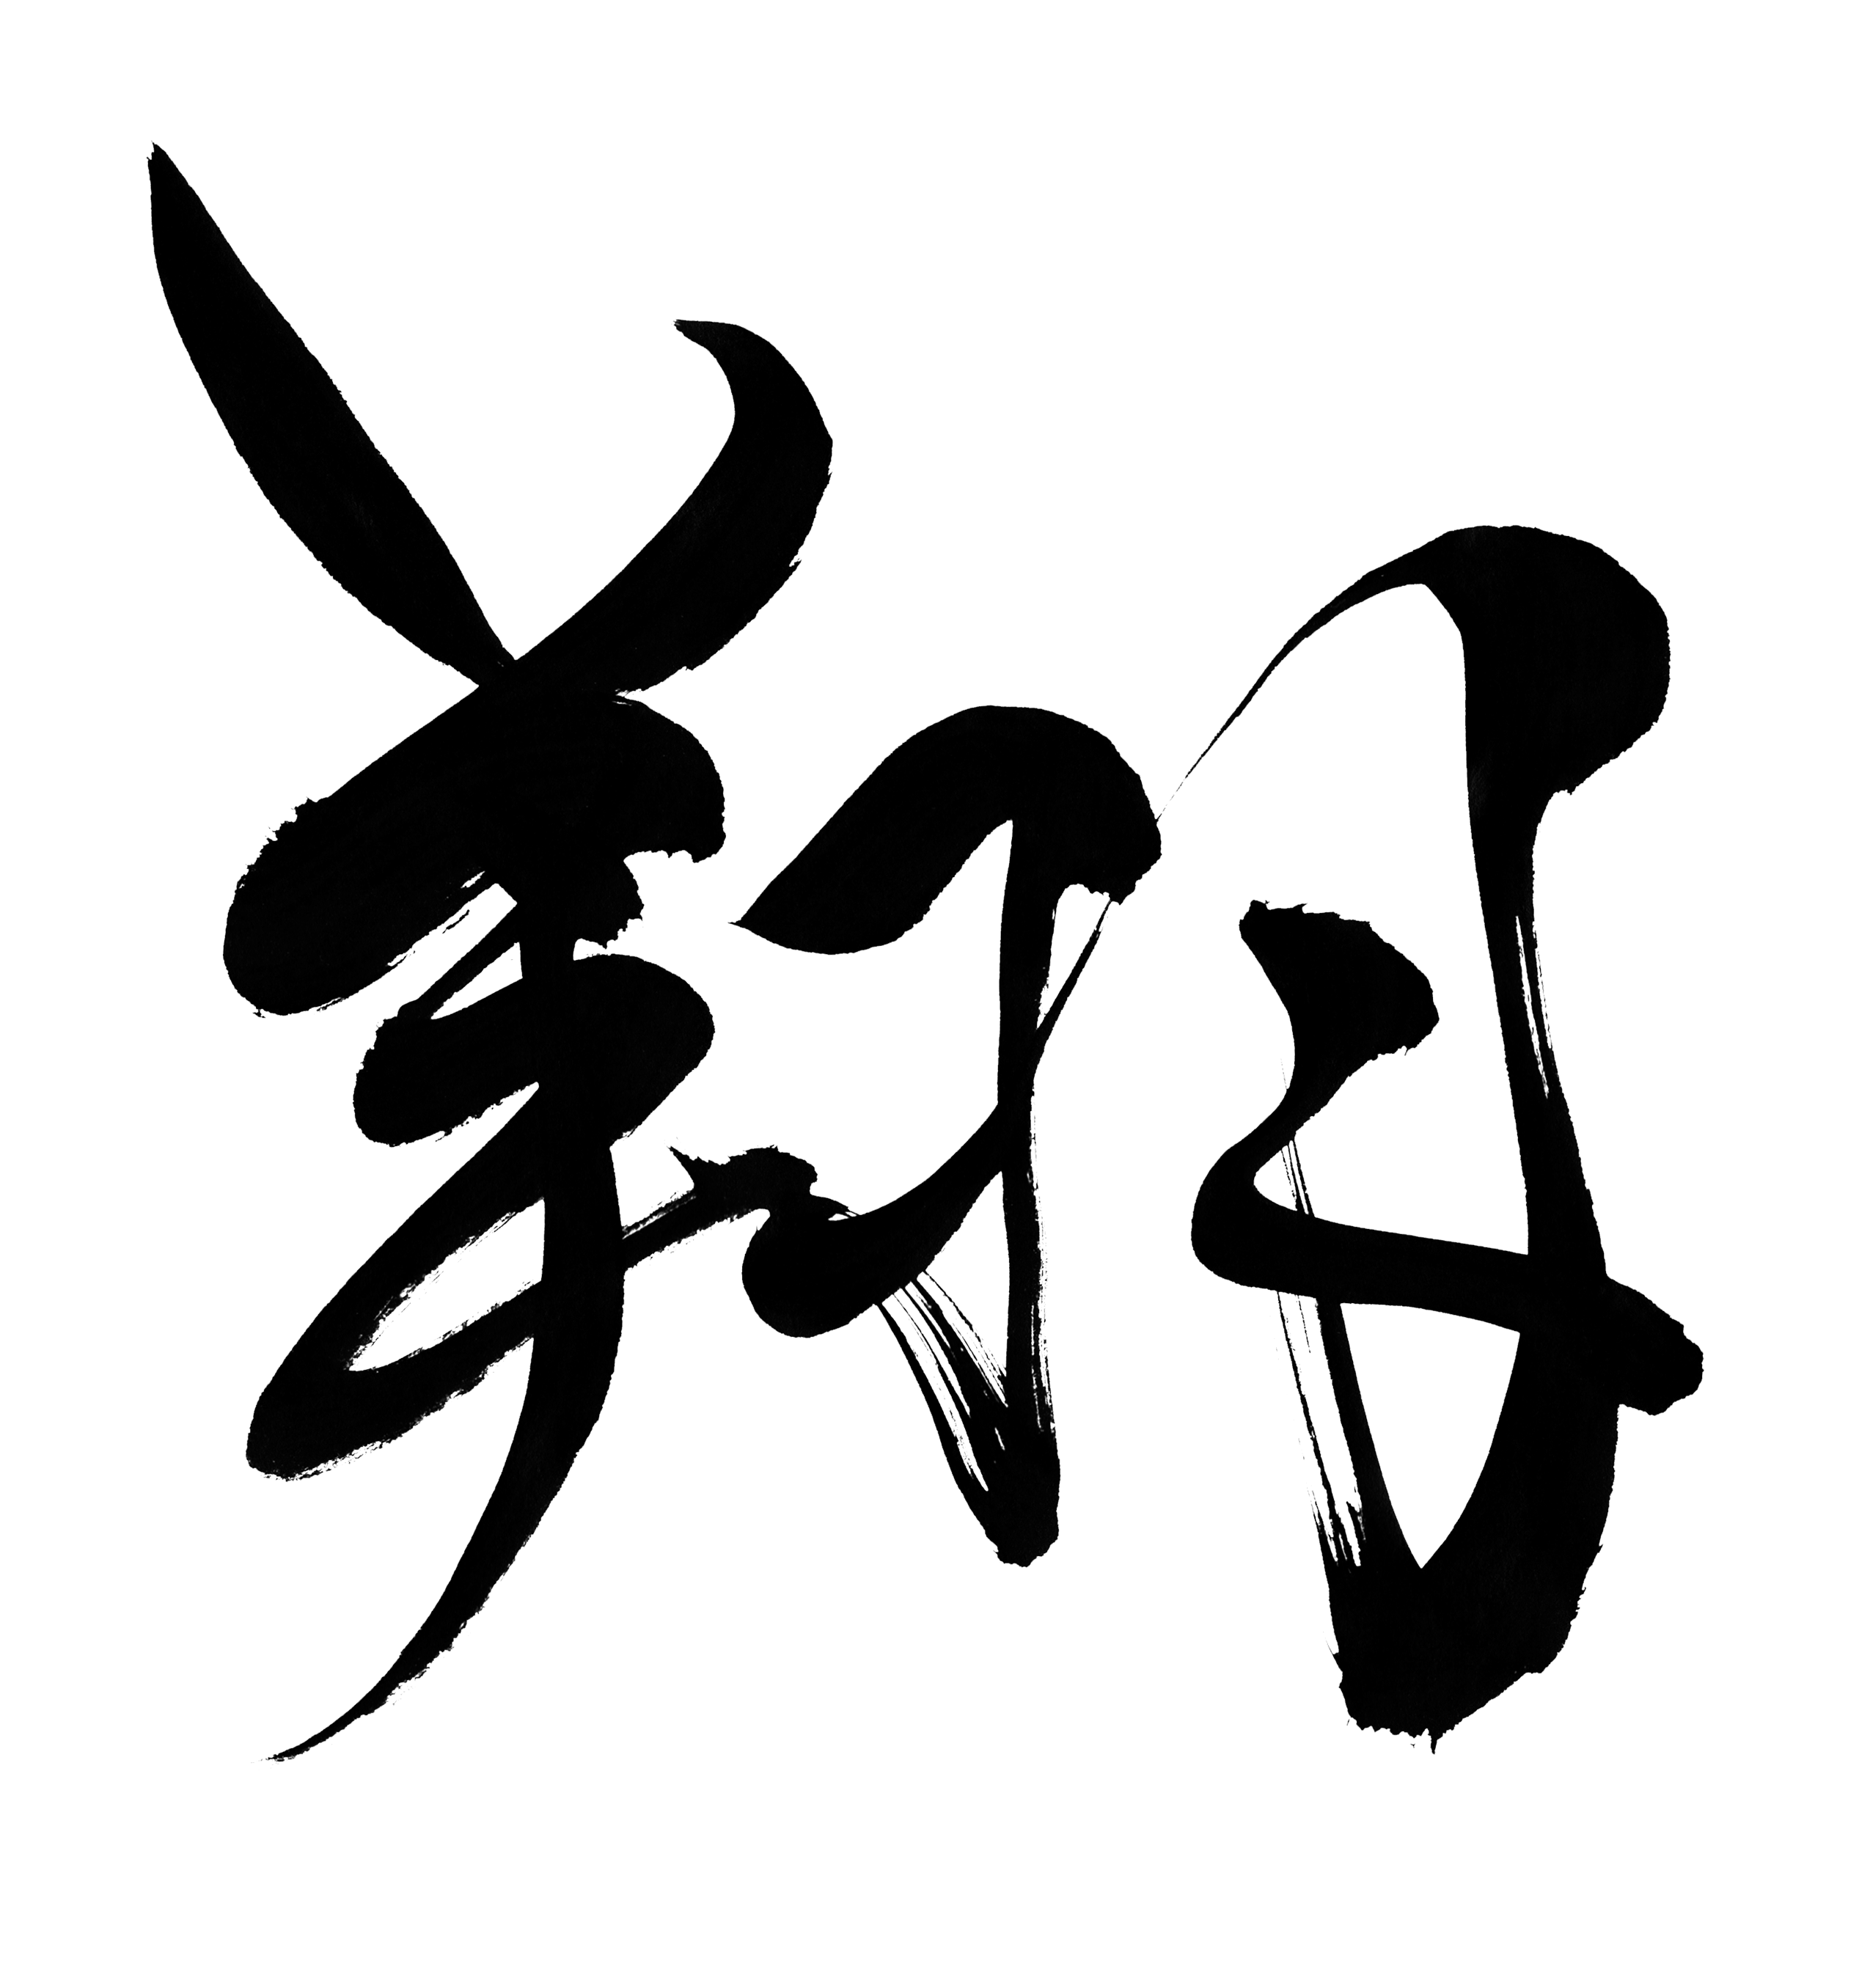 Fly free japanese calligraphy Japanese calligraphy online